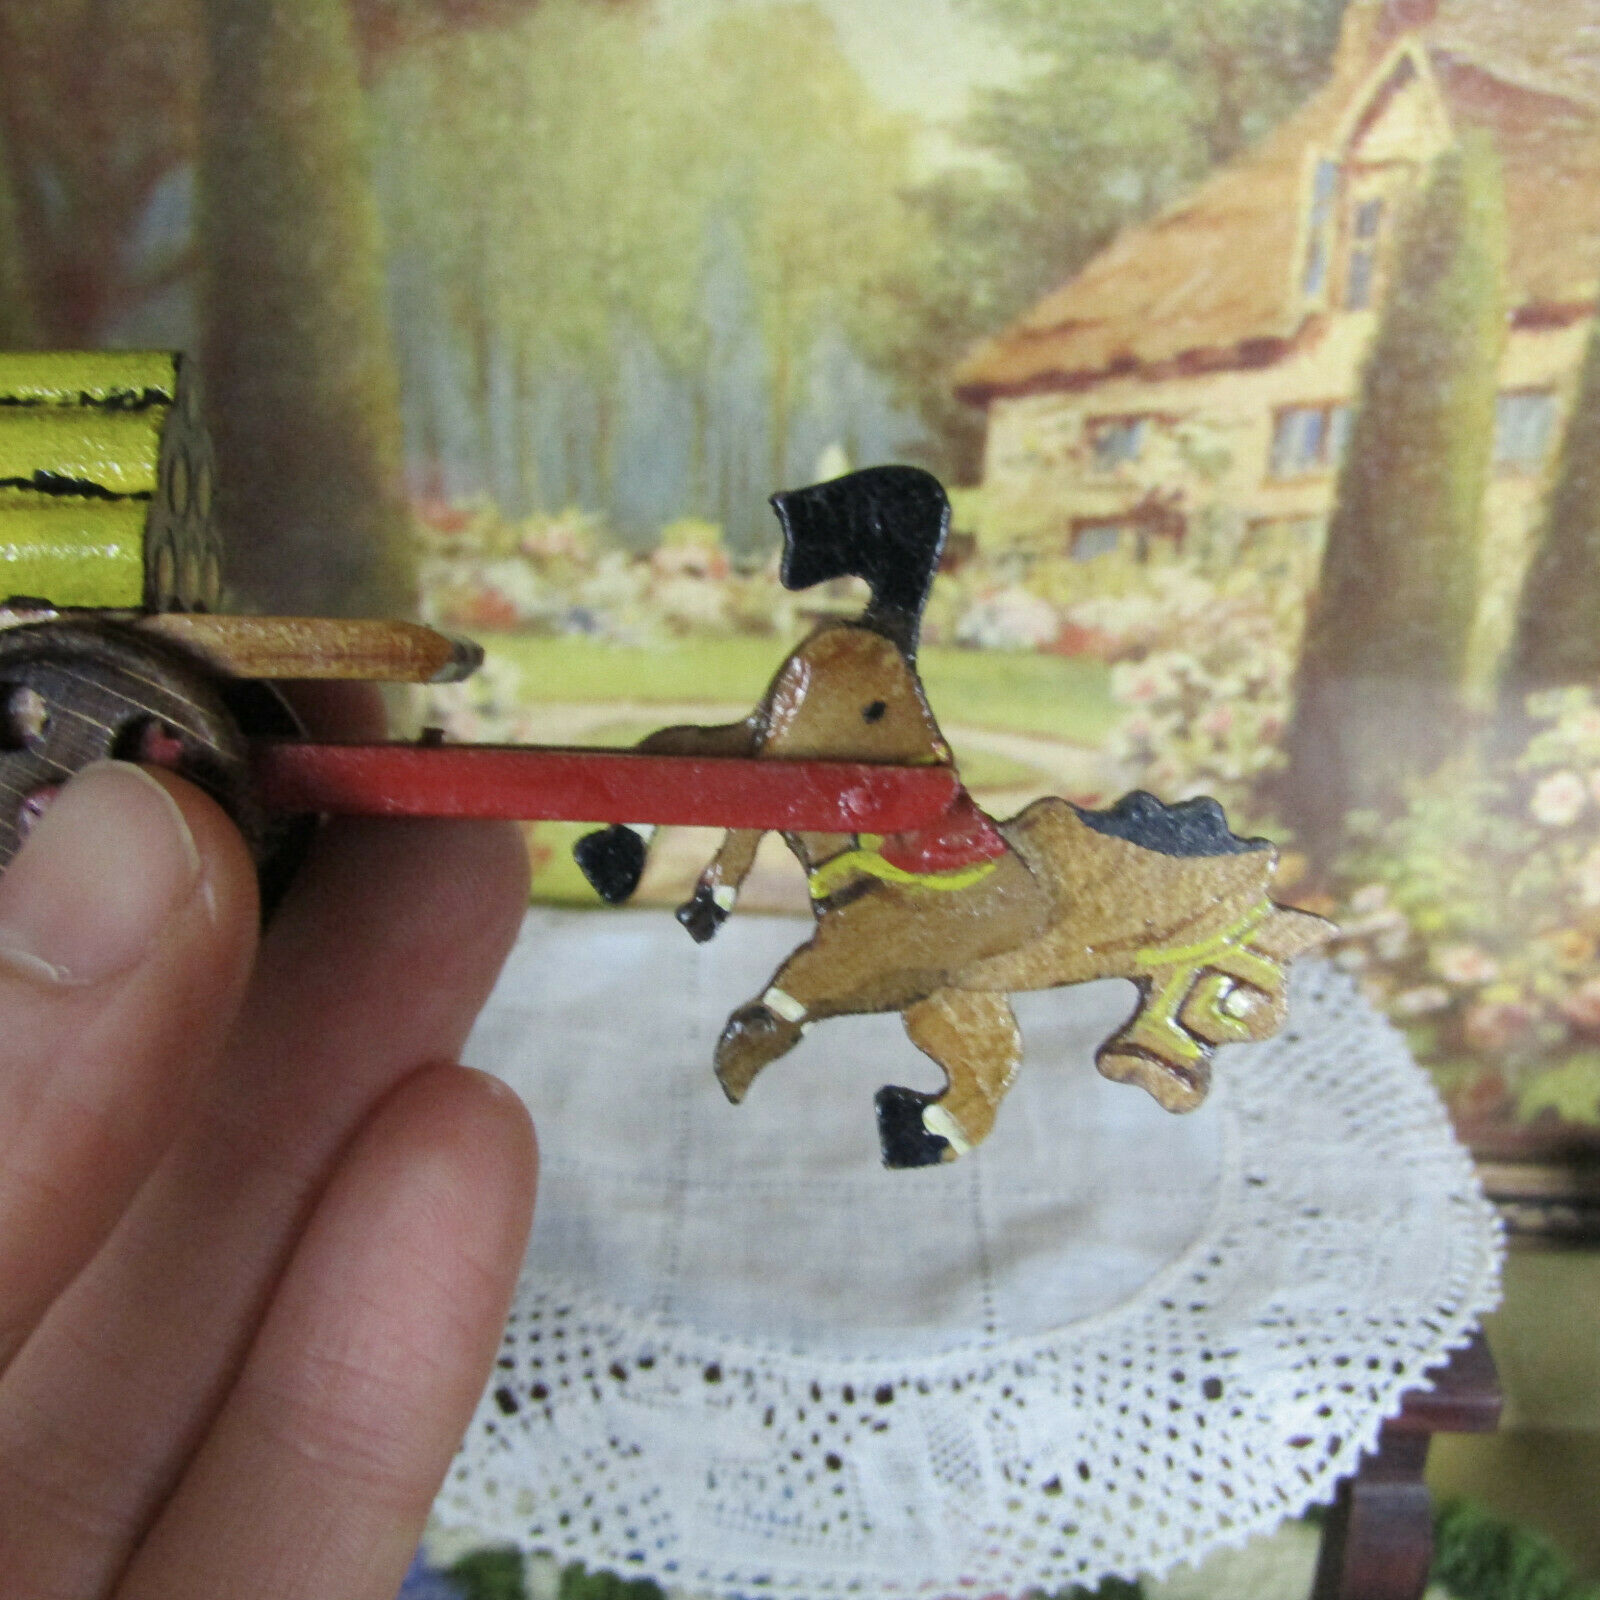 Vtg HORSE CARRIAGE CART Miniature Wood Dollhouse Toy Erzgebirge Putz Style Japan - $25.95